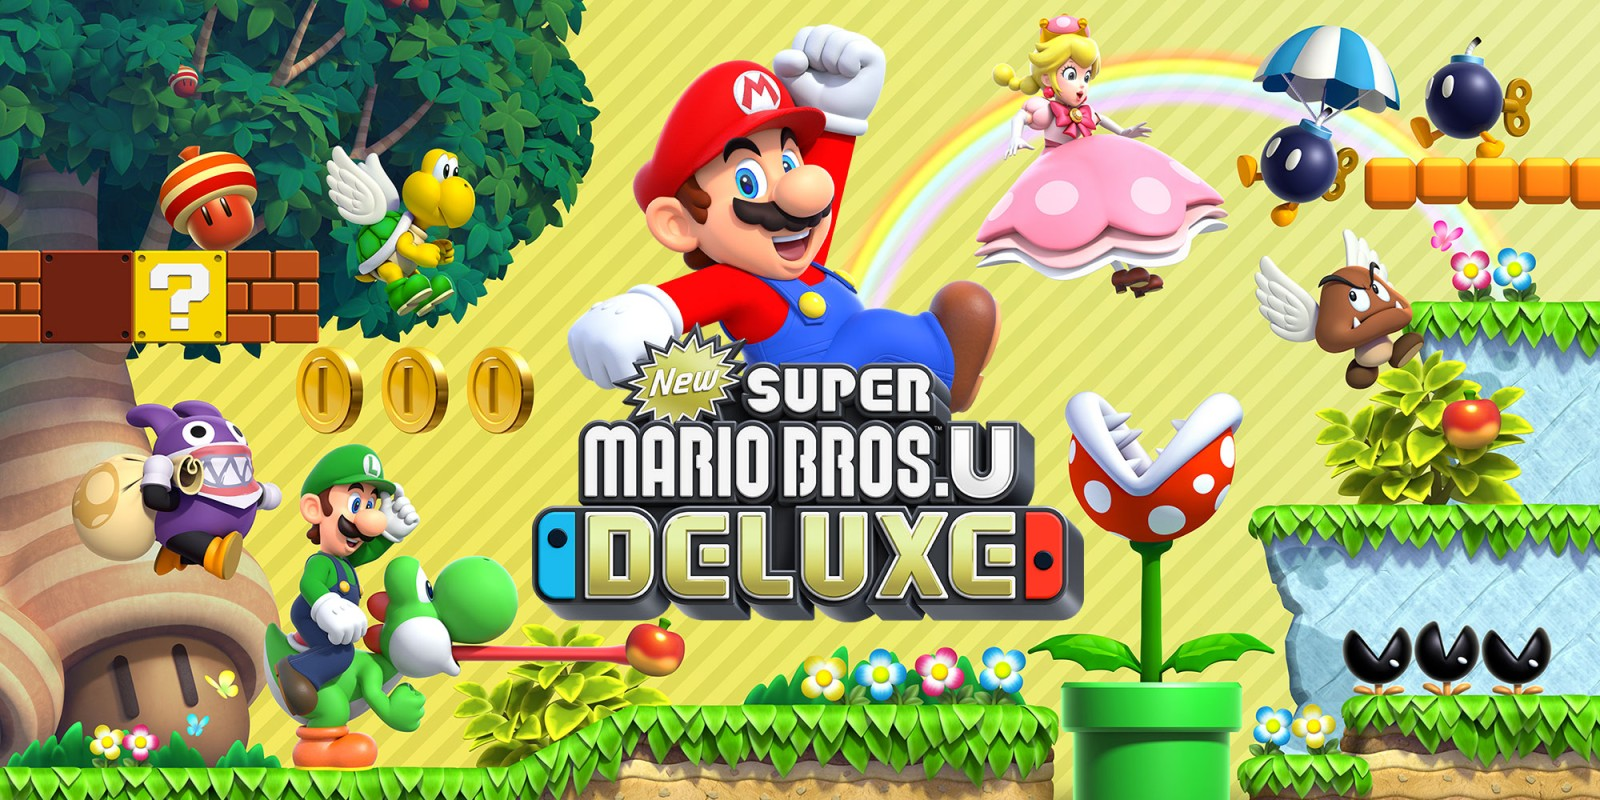 MAR10 Deals now live w/ Mario Switch games at $40 + more